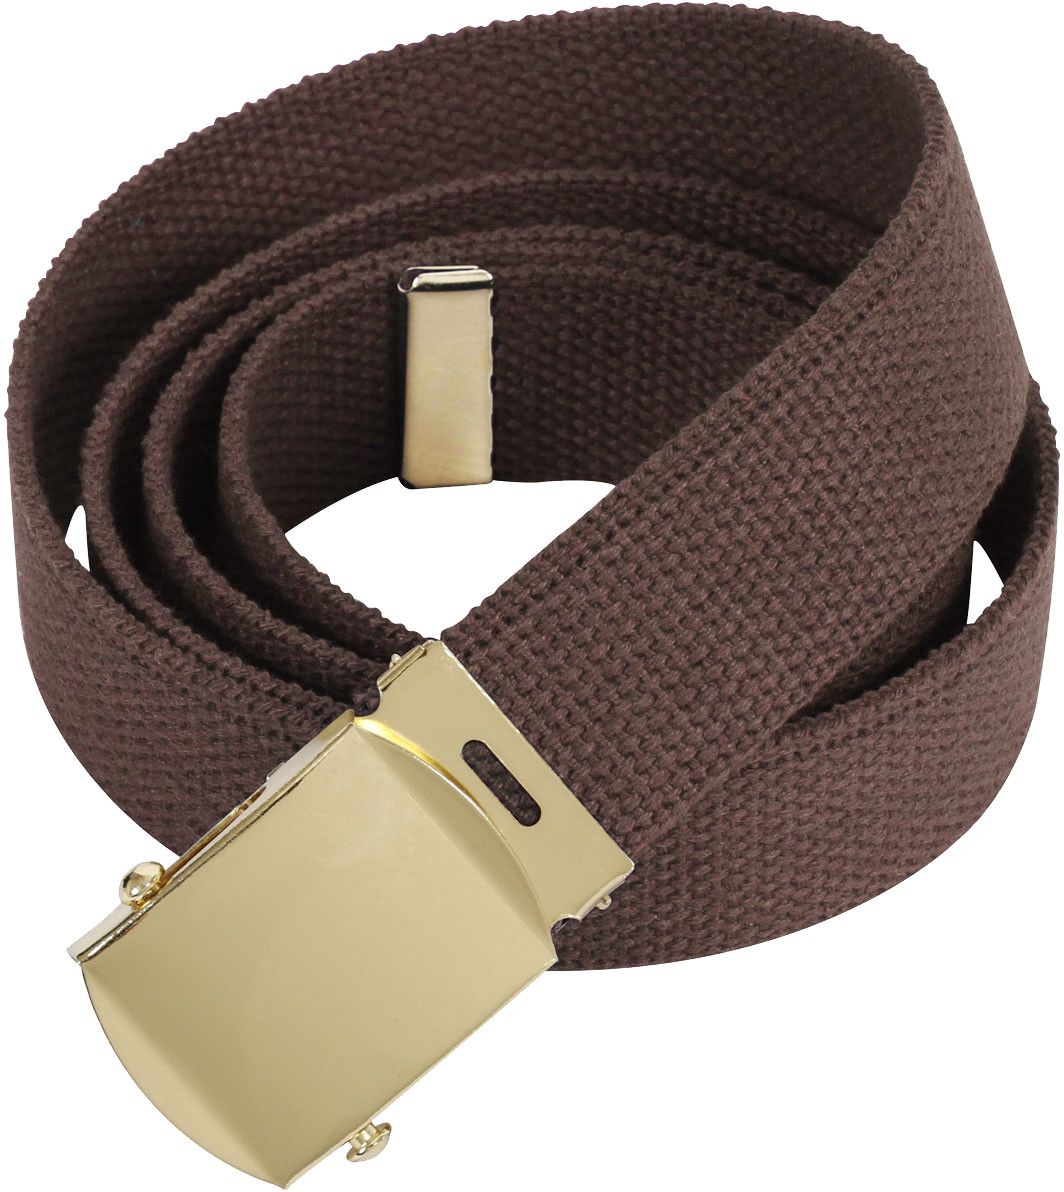 Brown Military Web Belt with Brass Buckle 24e69422f4c